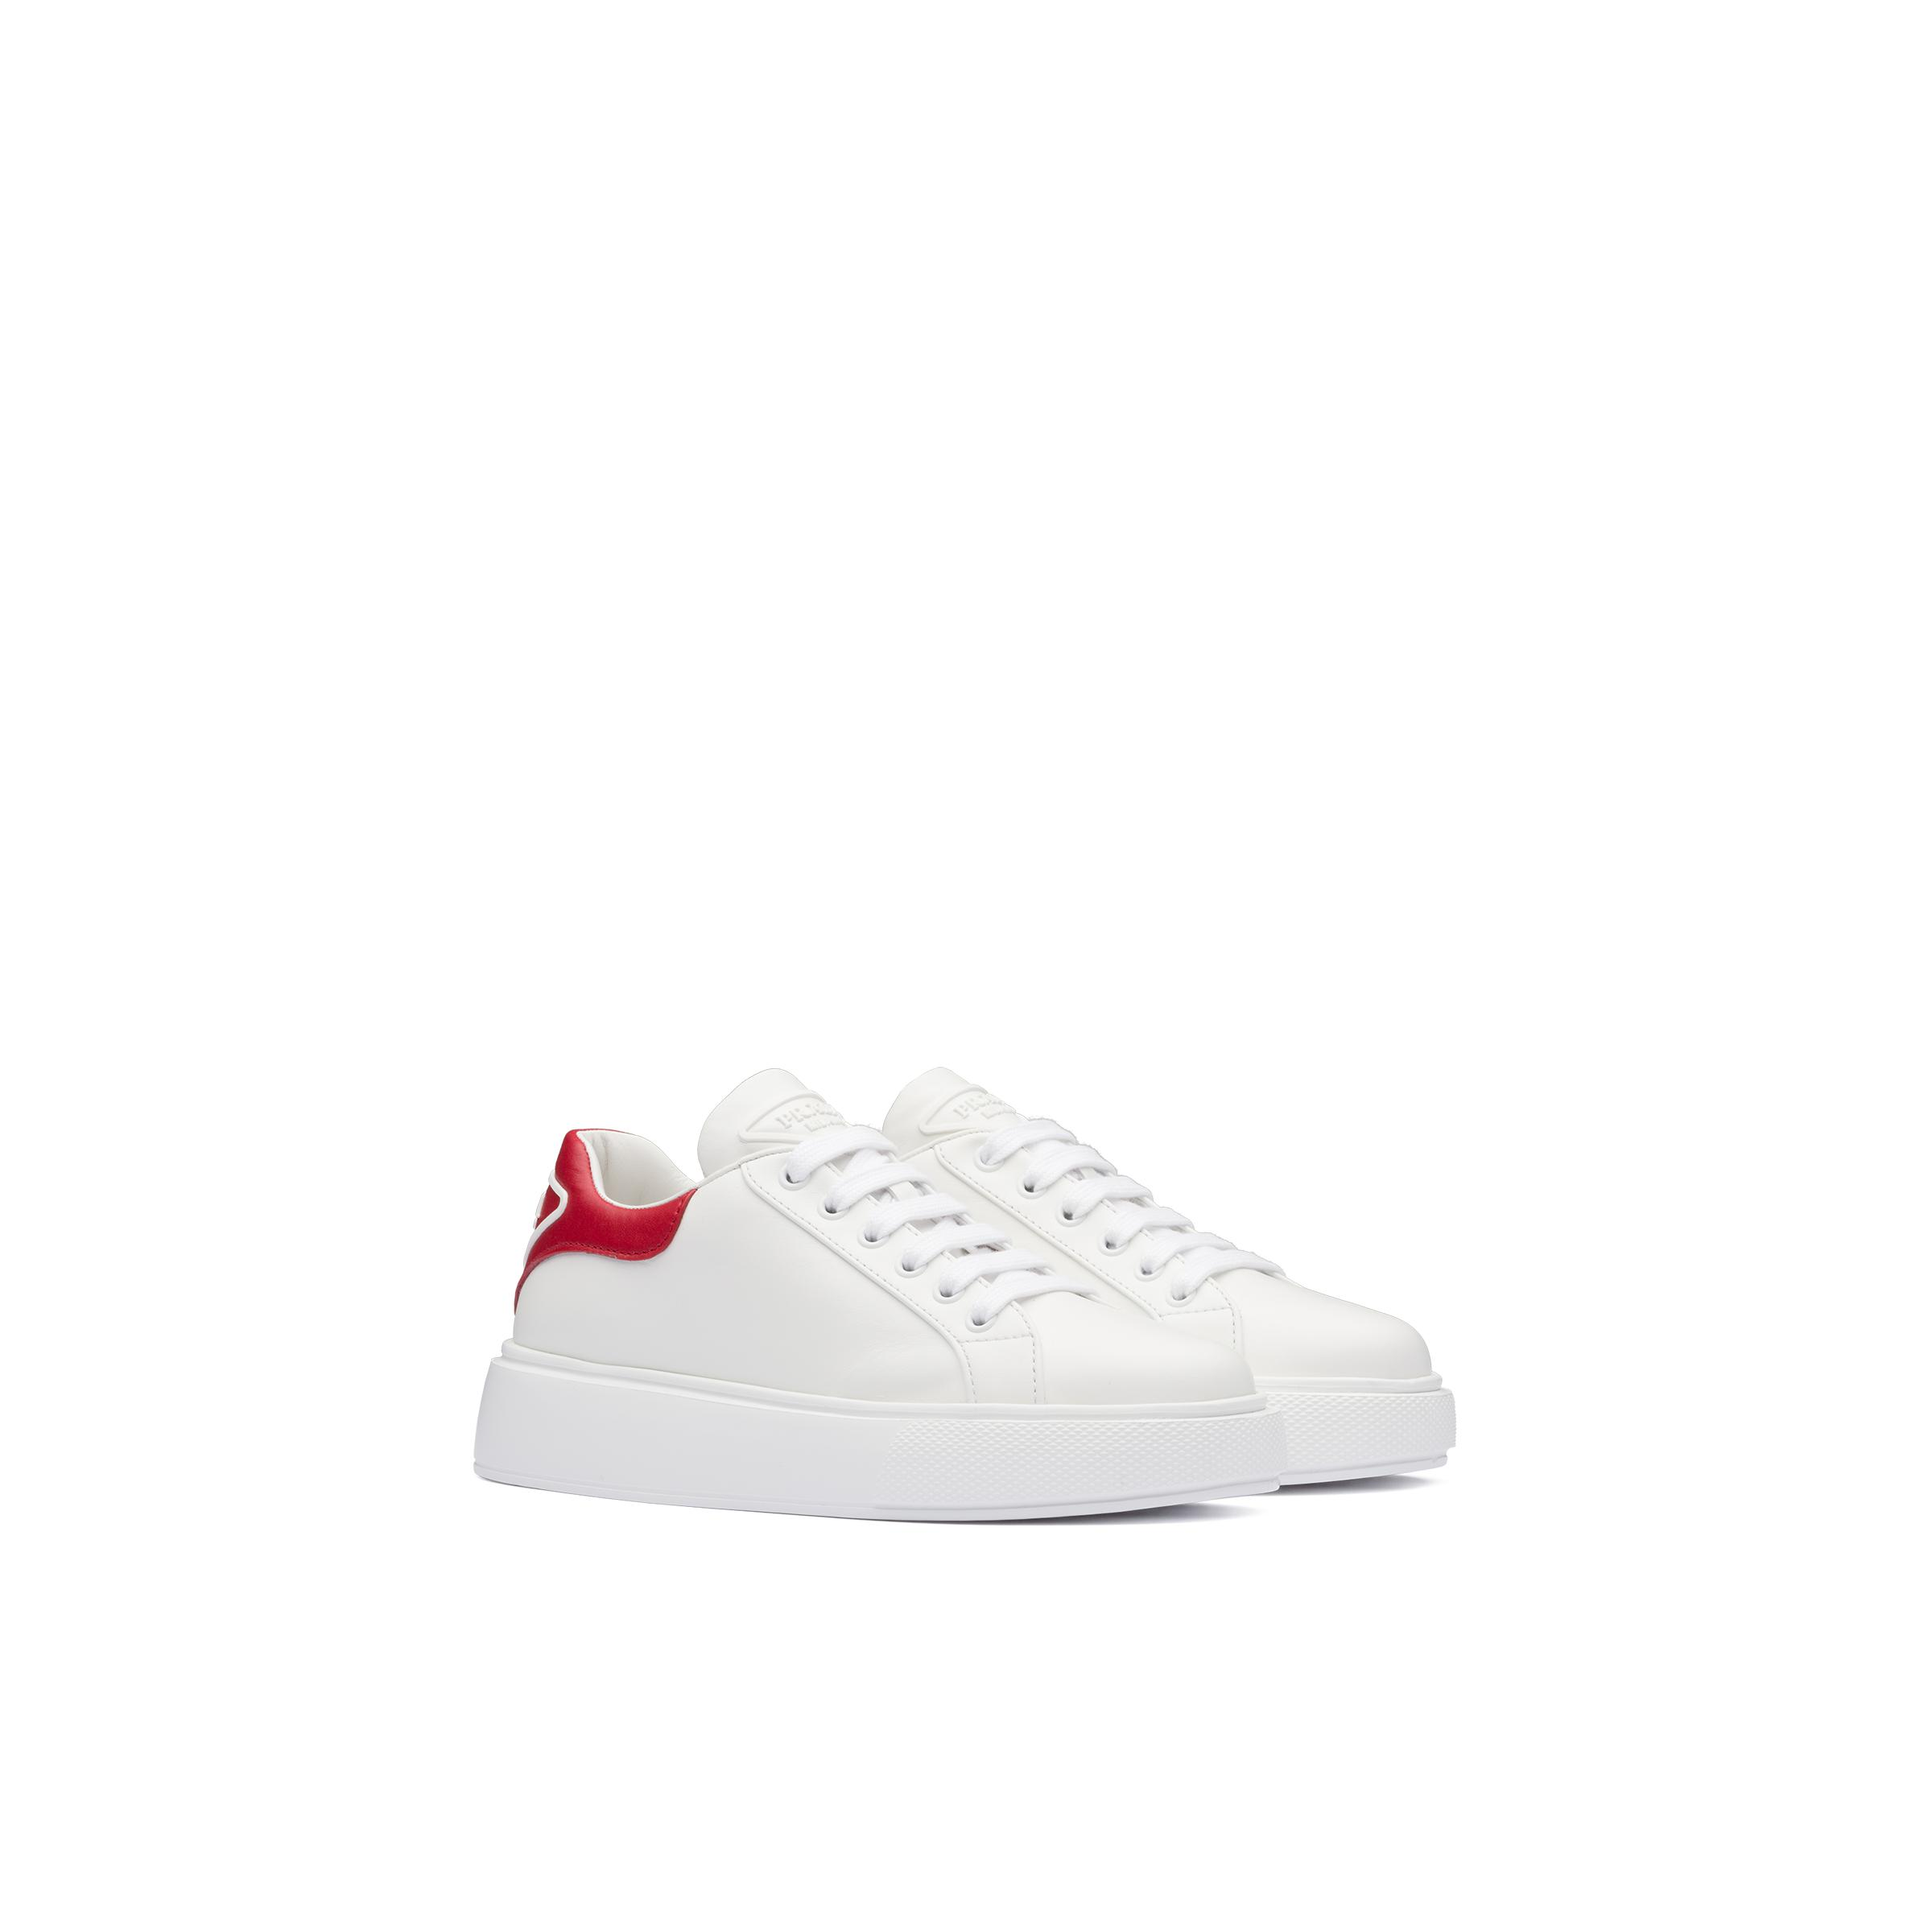 Leather Sneakers Women White/red